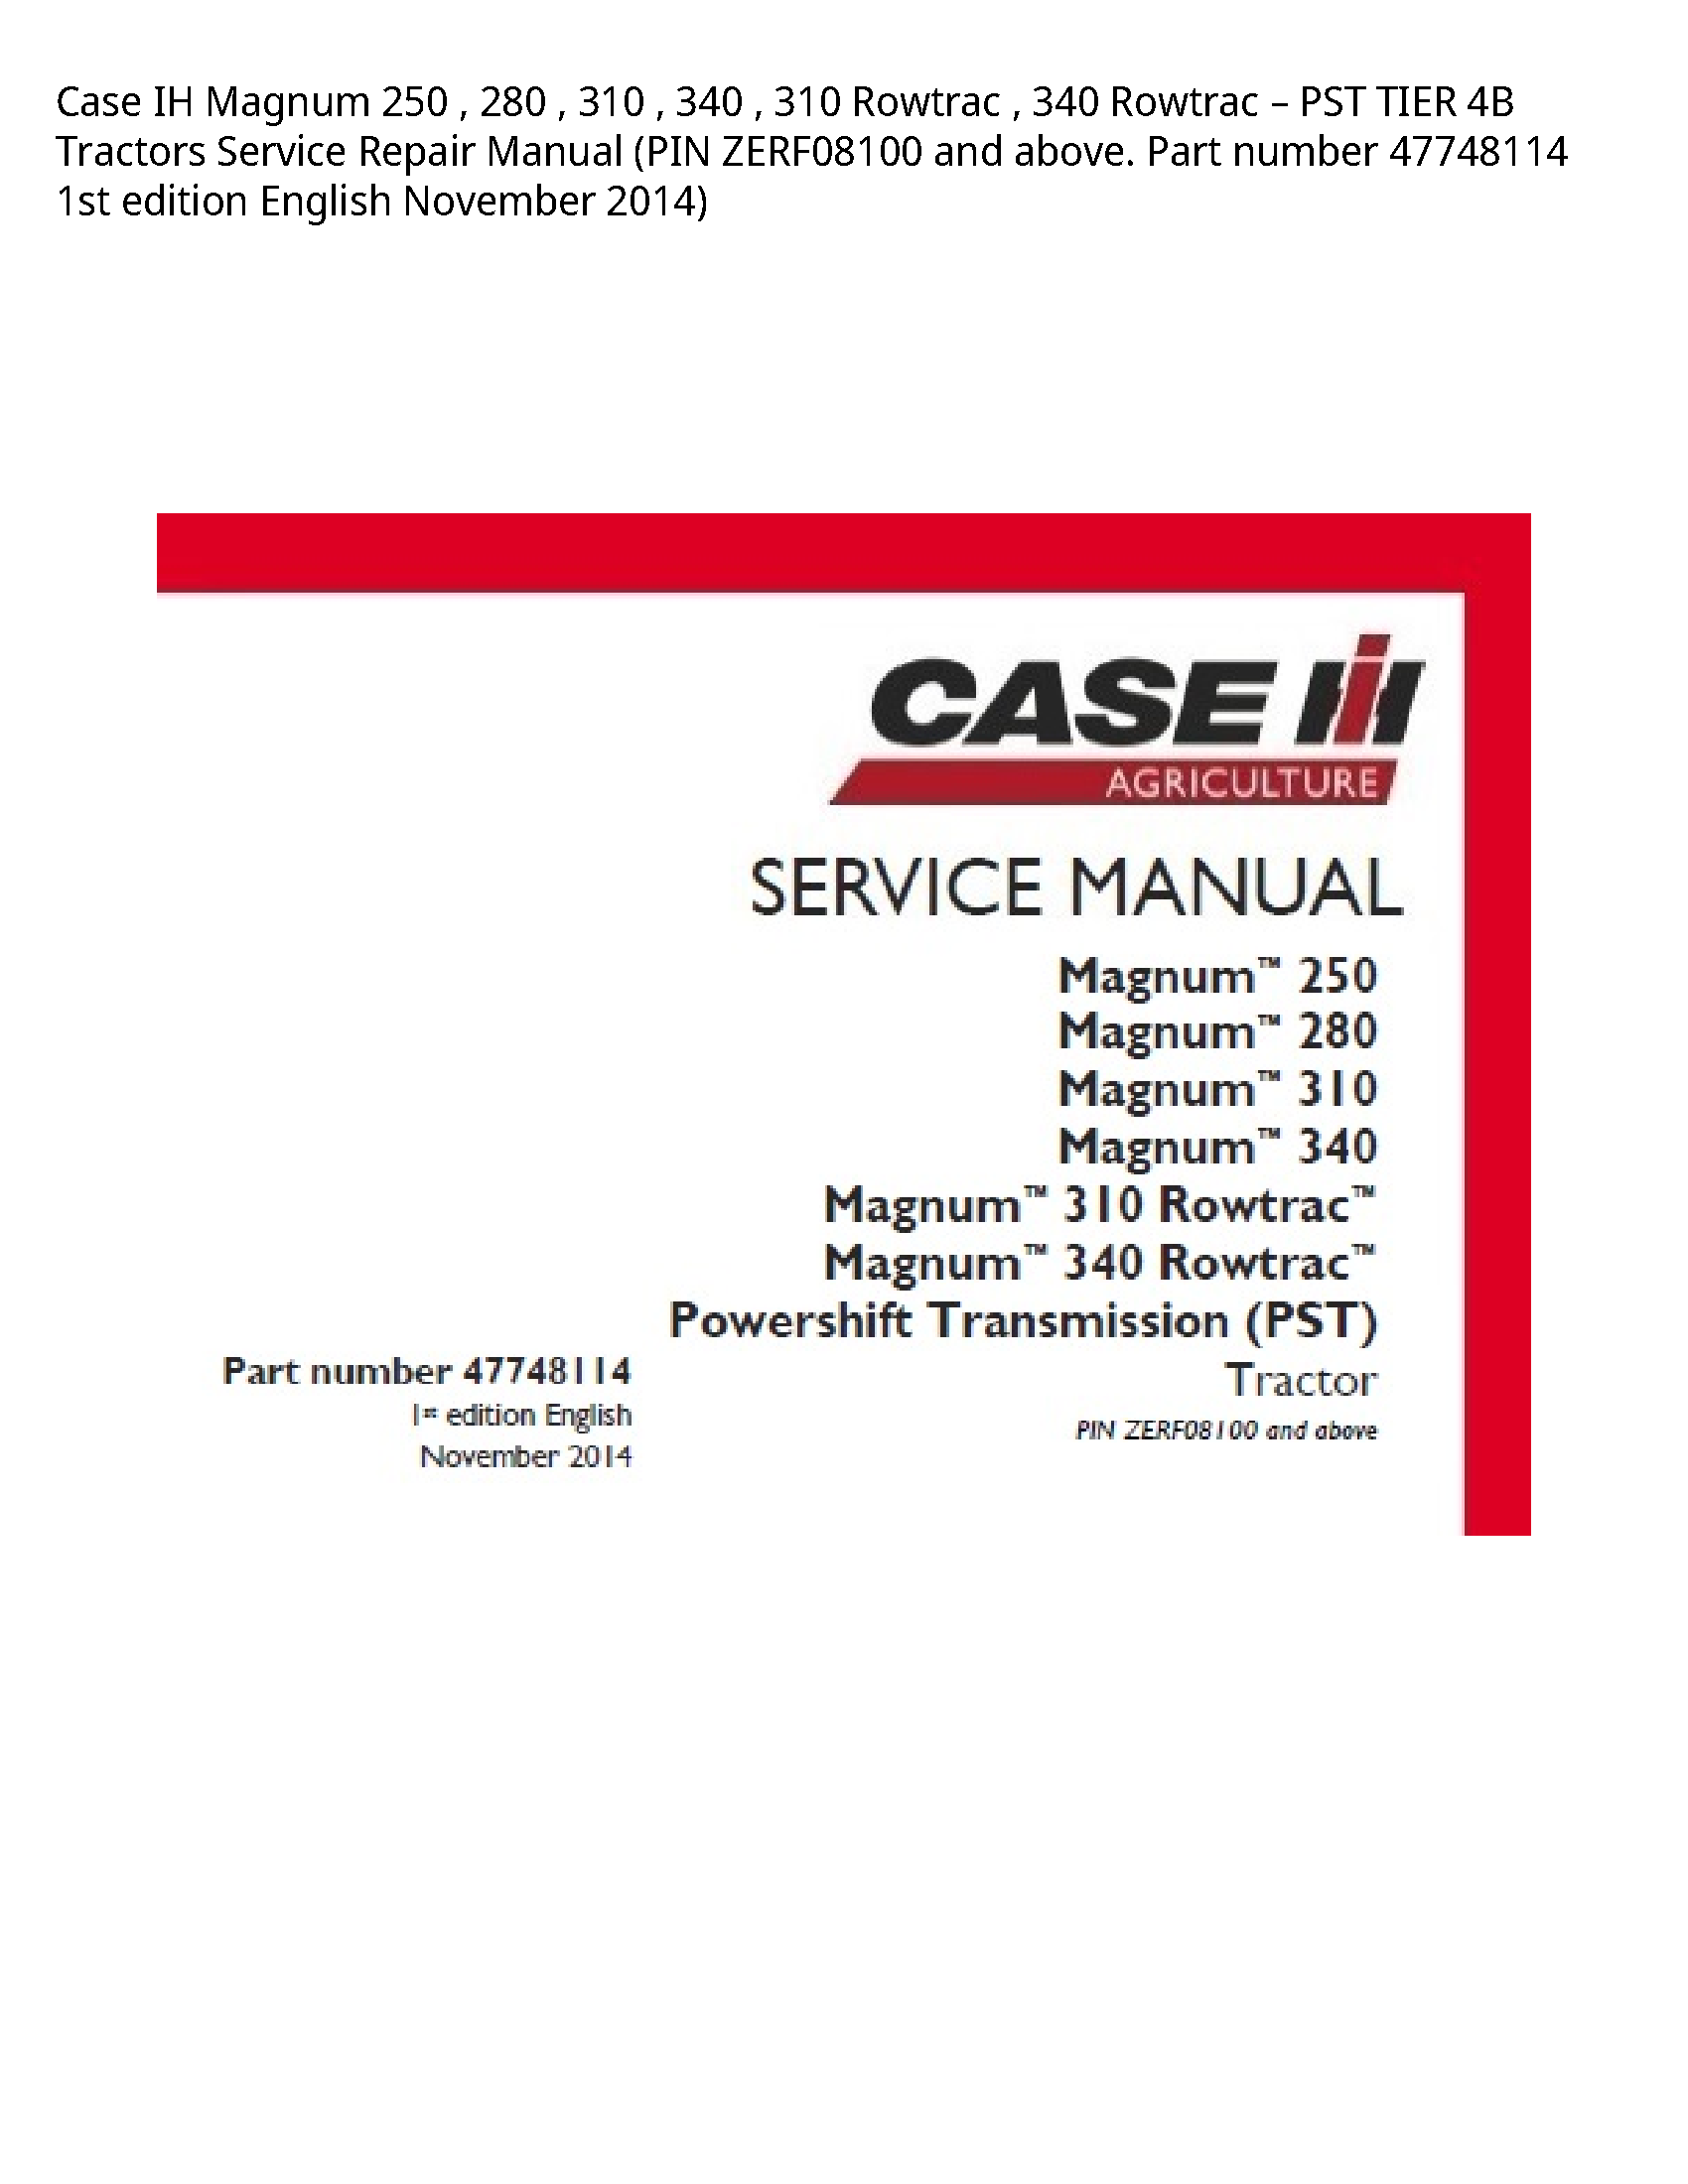 Case/Case IH 250 IH Magnum Rowtrac Rowtrac PST TIER Tractors manual